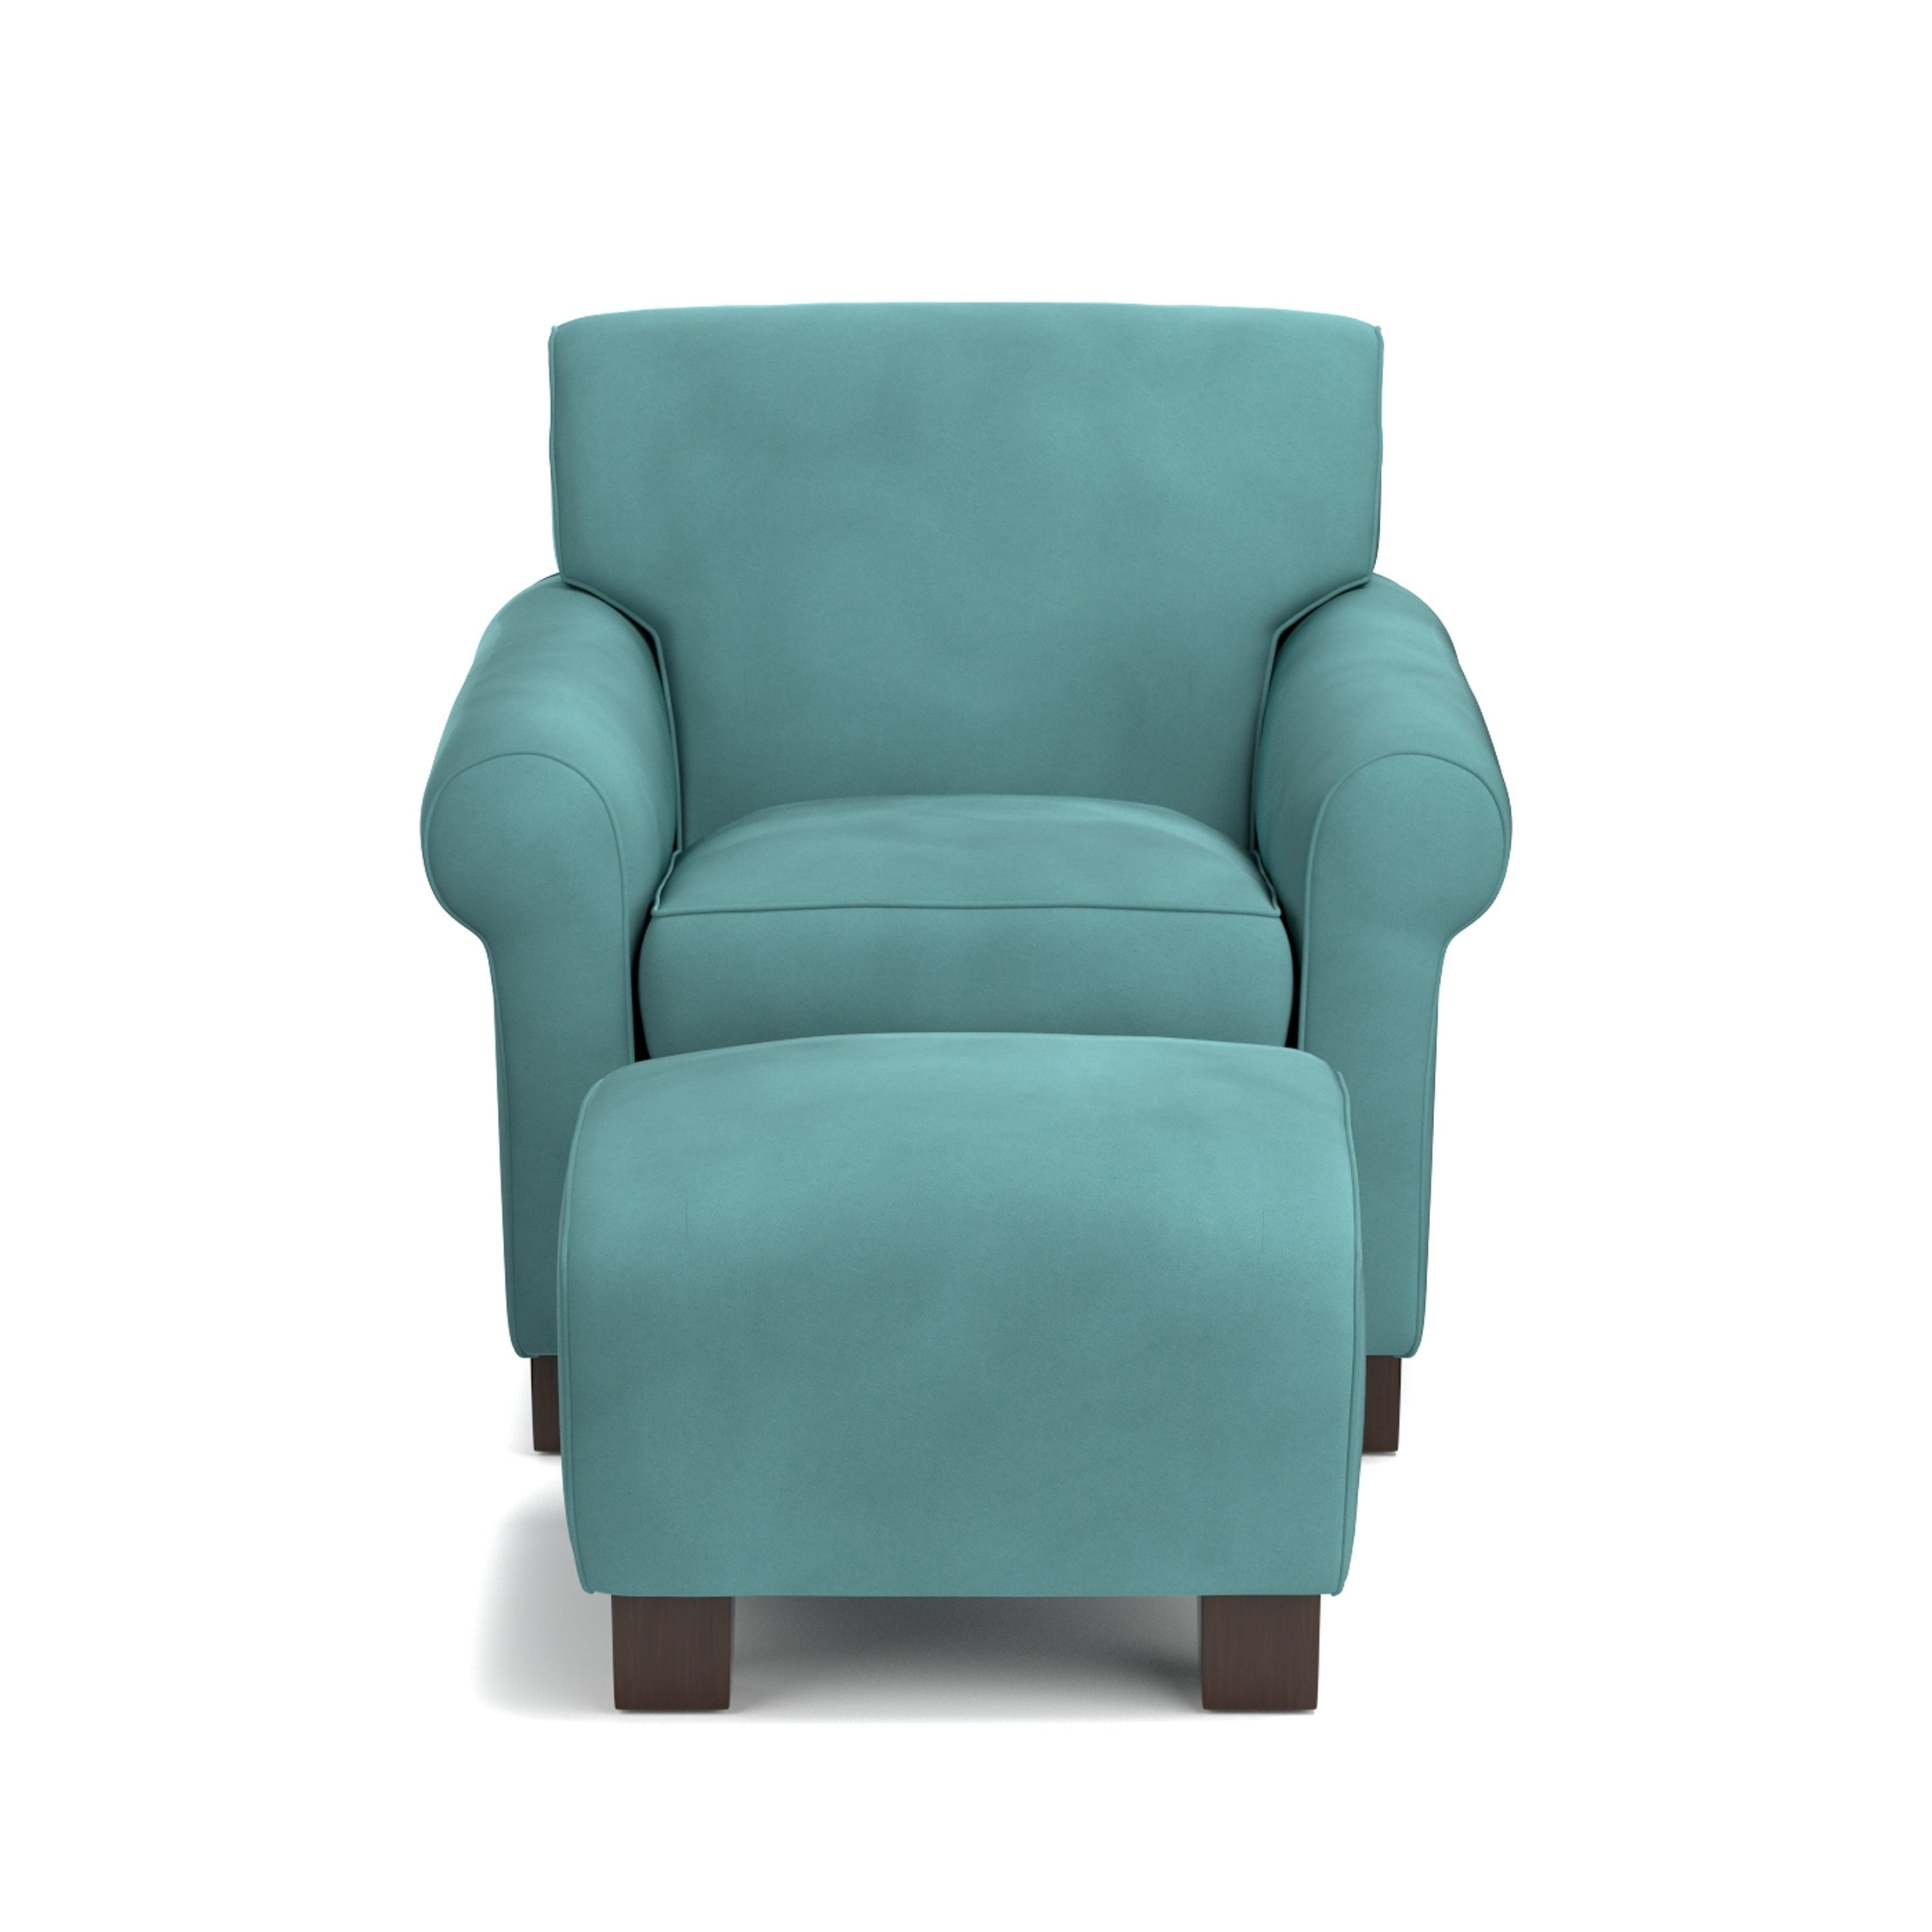 Beau Shop Handy Living Winnetka Turquoise Blue Velvet Arm Chair And Ottoman    Free Shipping Today   Overstock   20710185